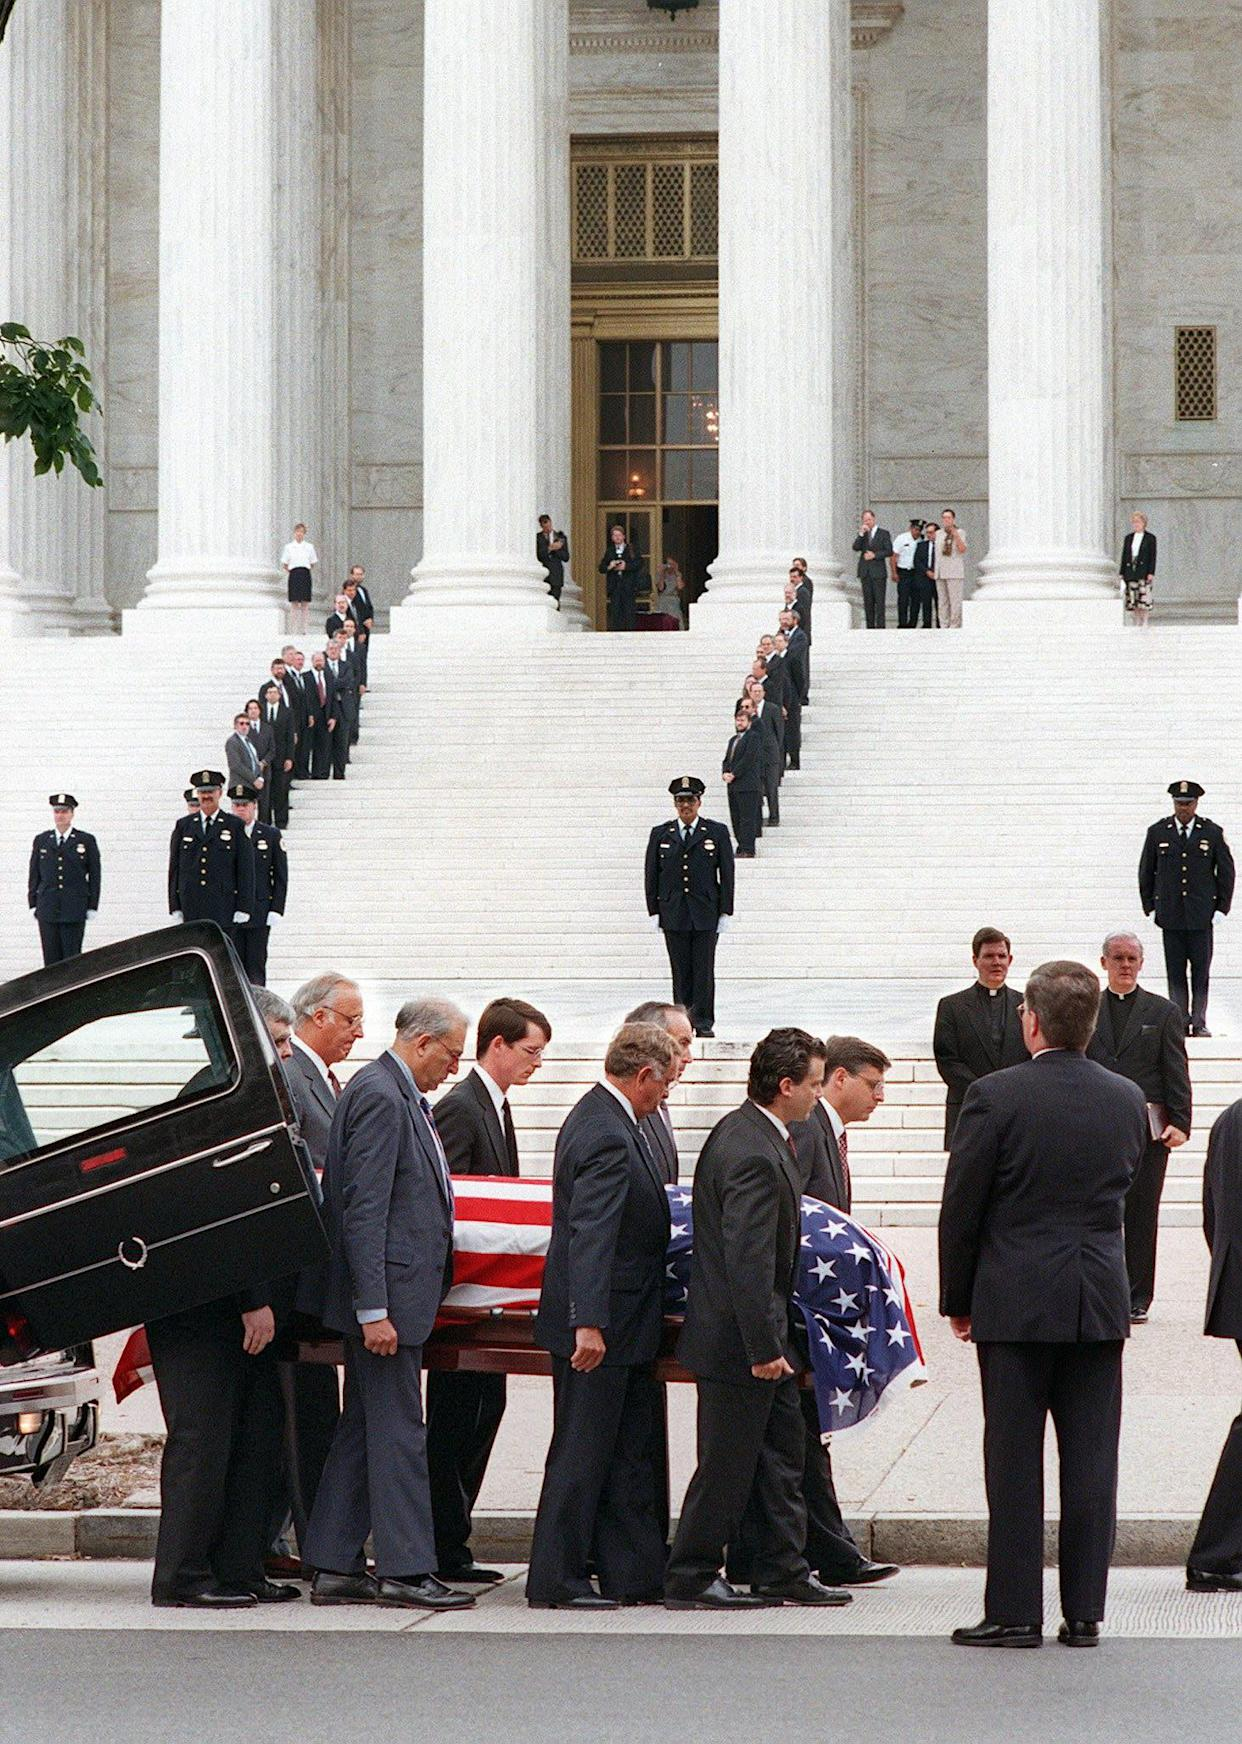 The body of formerJustice William Brennan is carried out of the hearse before beingtaken into the Supreme Court on July 28, 1997, where hethen lay in repose.